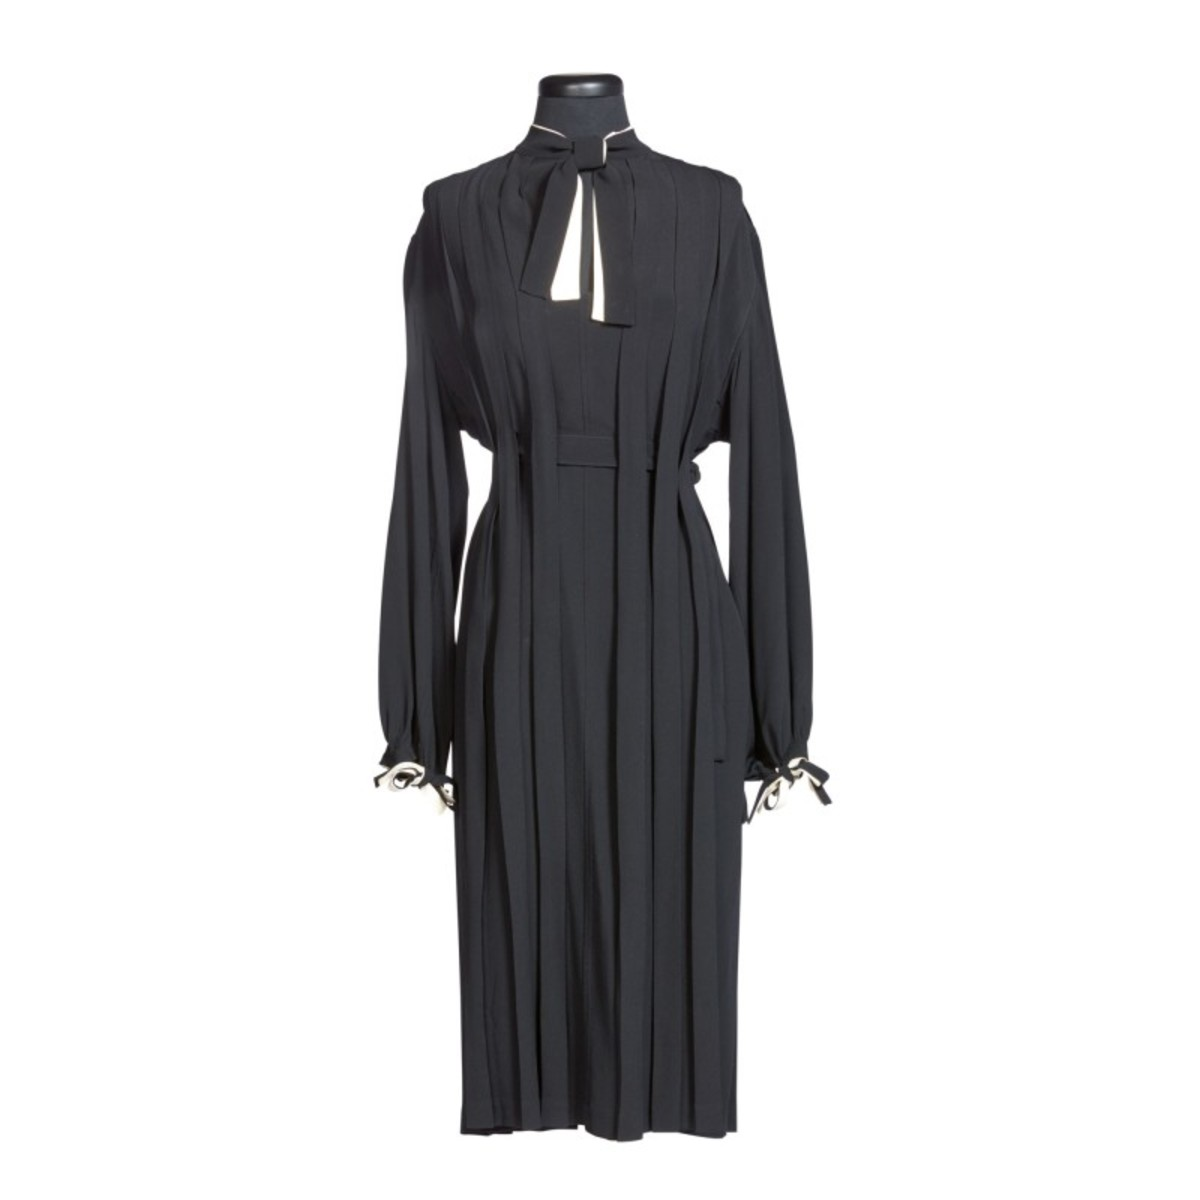 A custom pleated silk dress with twin stand up collars in black and white, long black and white ties to neck and wrists, adjustable black silk belt interlaced through concealed holes in pleats, possibly hand-sewn by O'Keeffe; sold for $25,000.